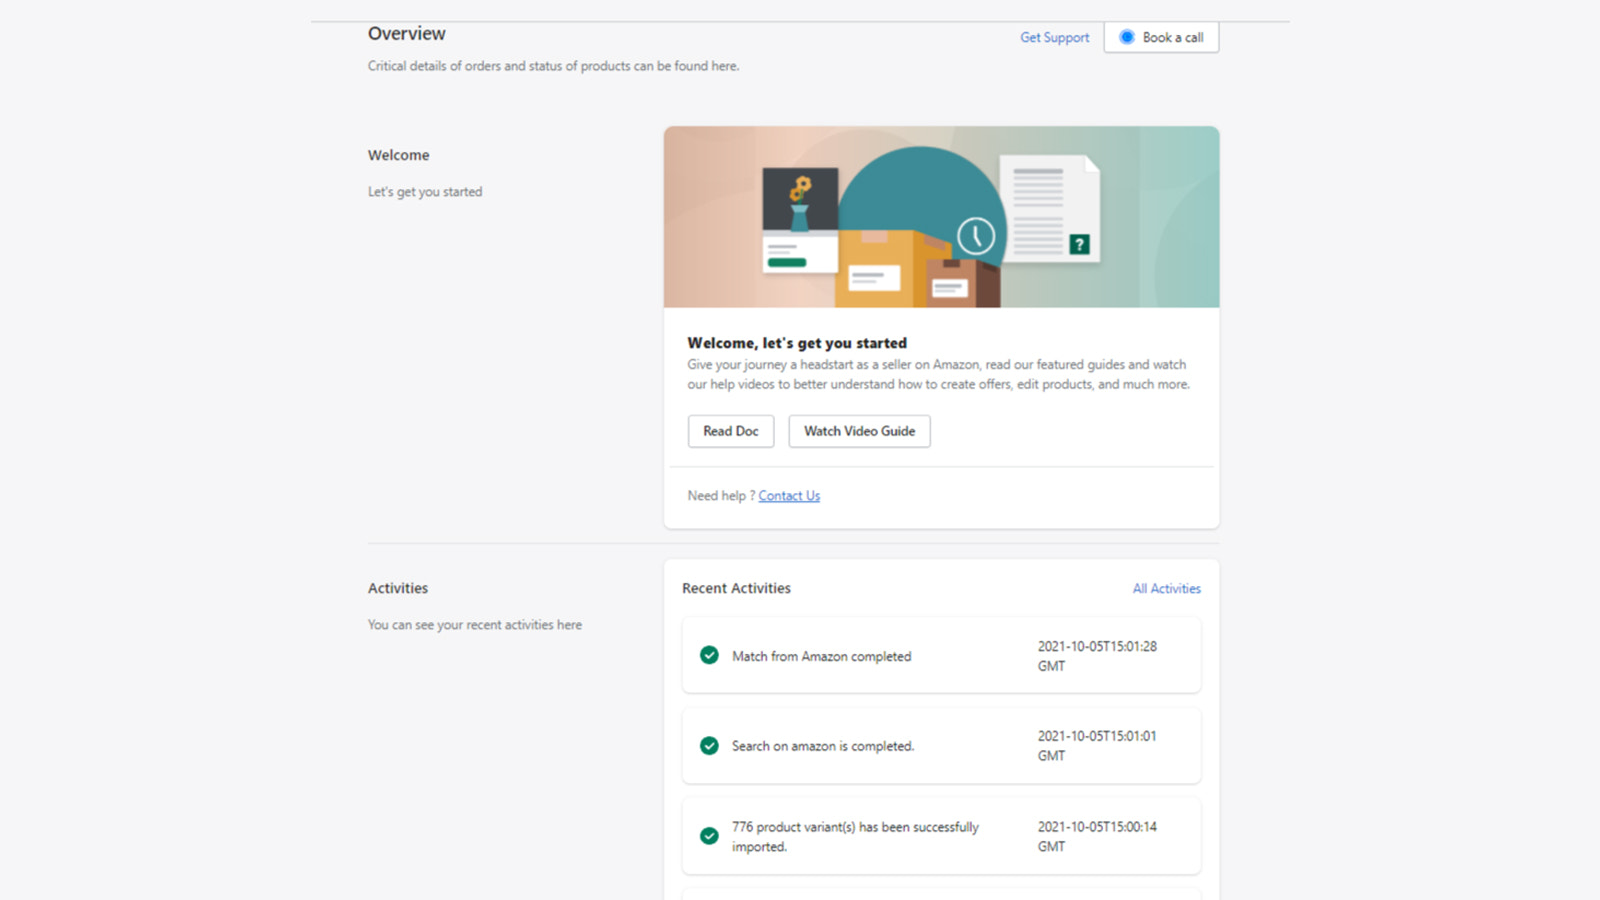 Dashboard-overview